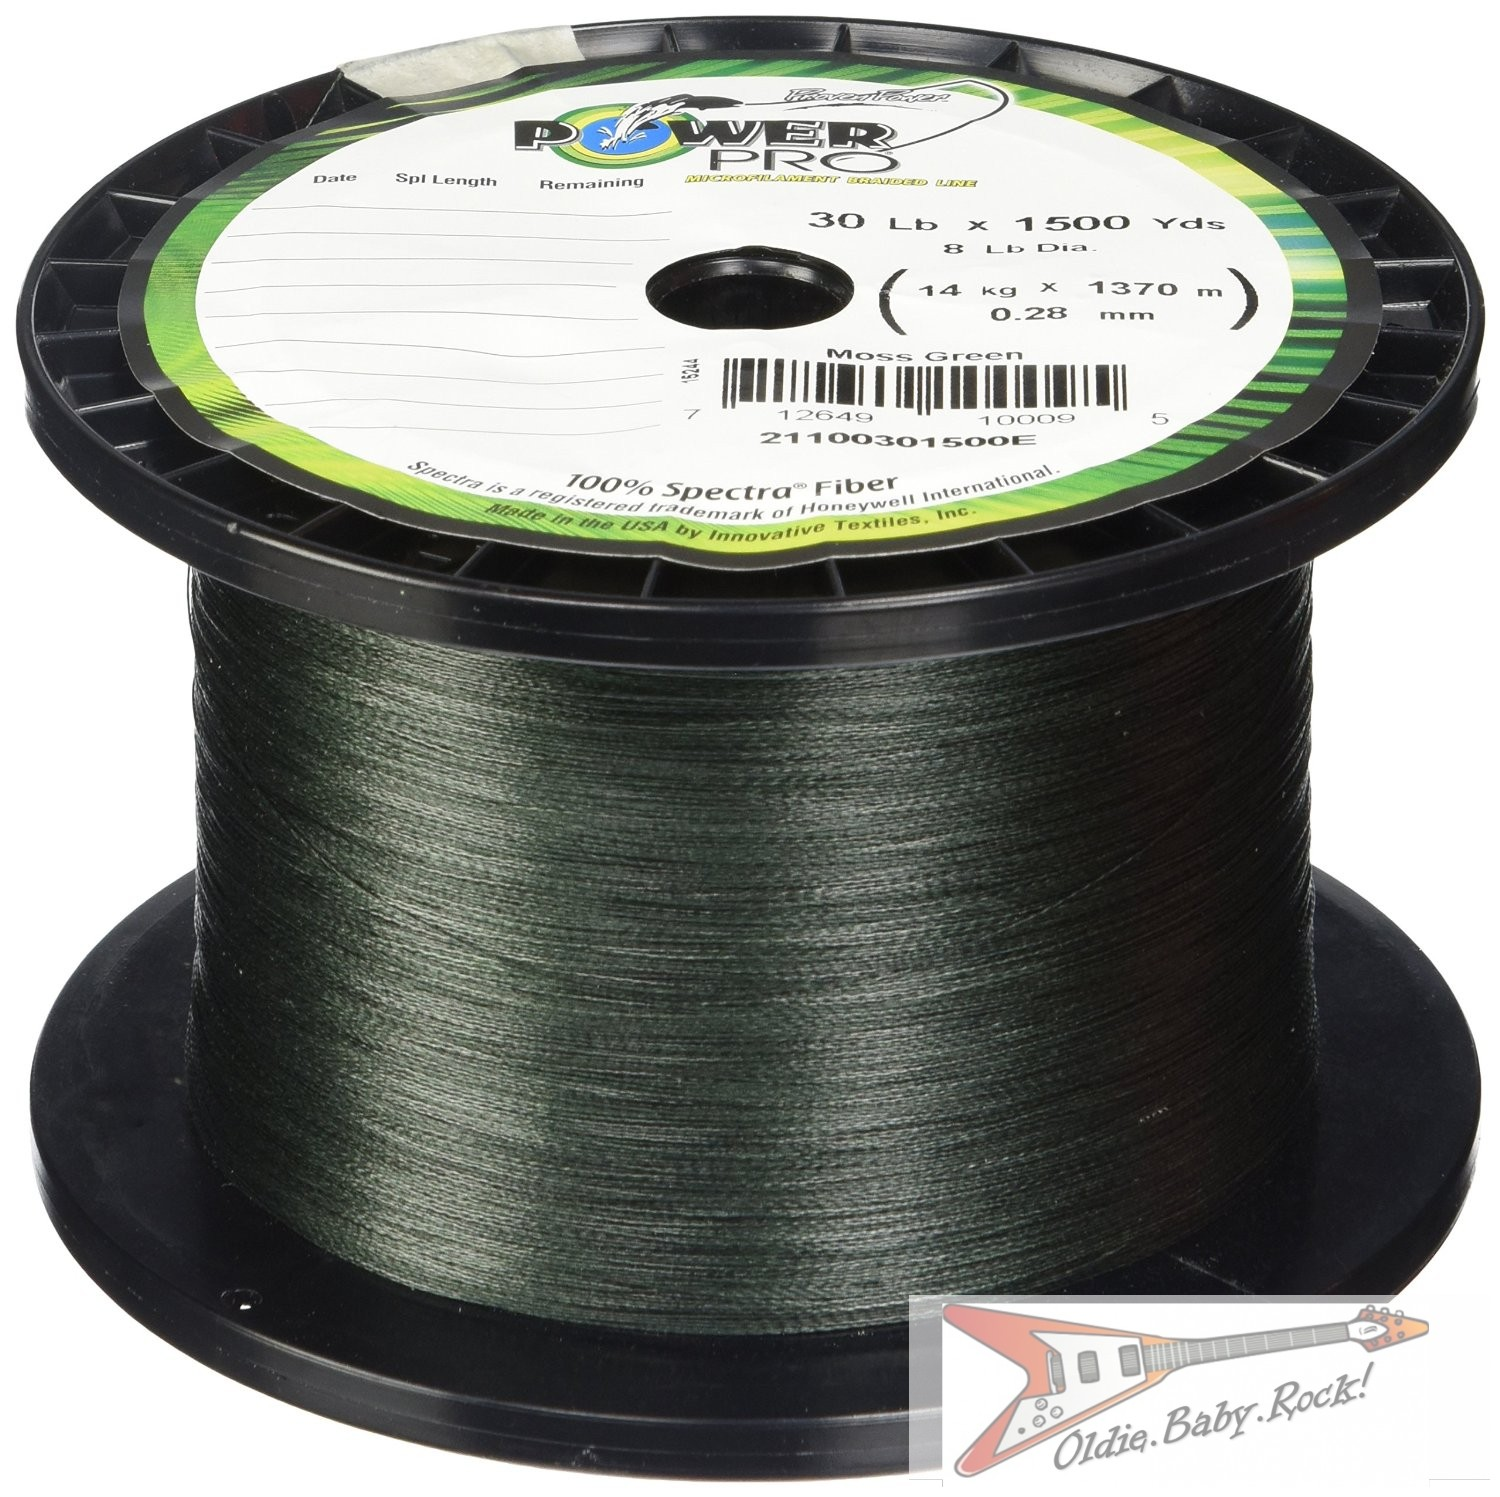 Fishing line images reverse search for Braided fishing line